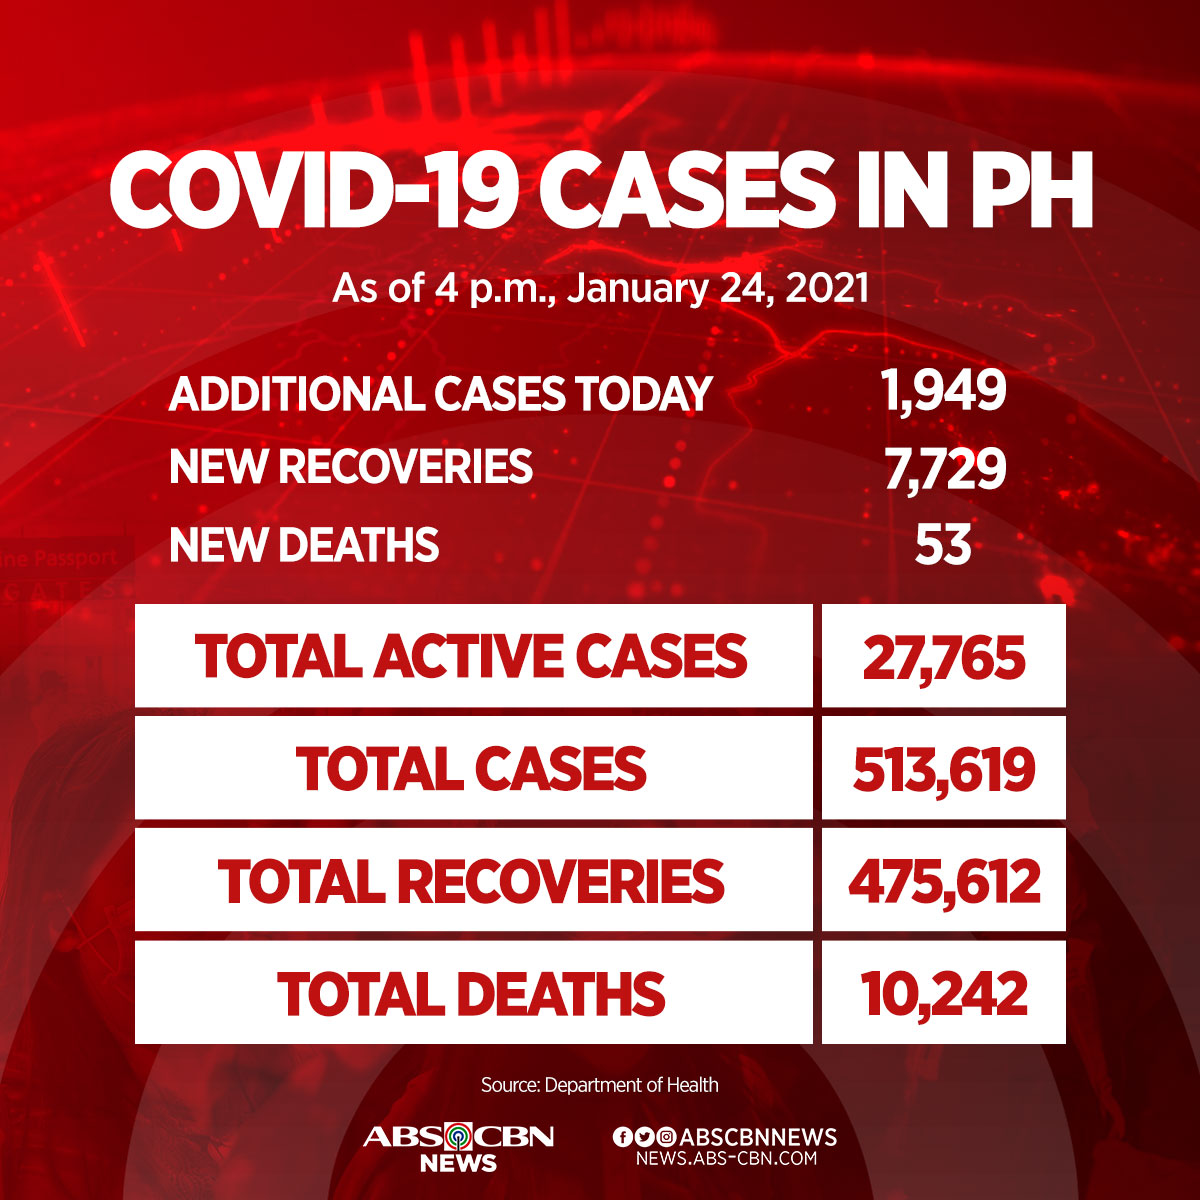 The Philippines confirmed 1,949 new cases of #COVID19 on Sunday bringing the country's total to 513,619. READ MORE: bit.ly/2YaqinG